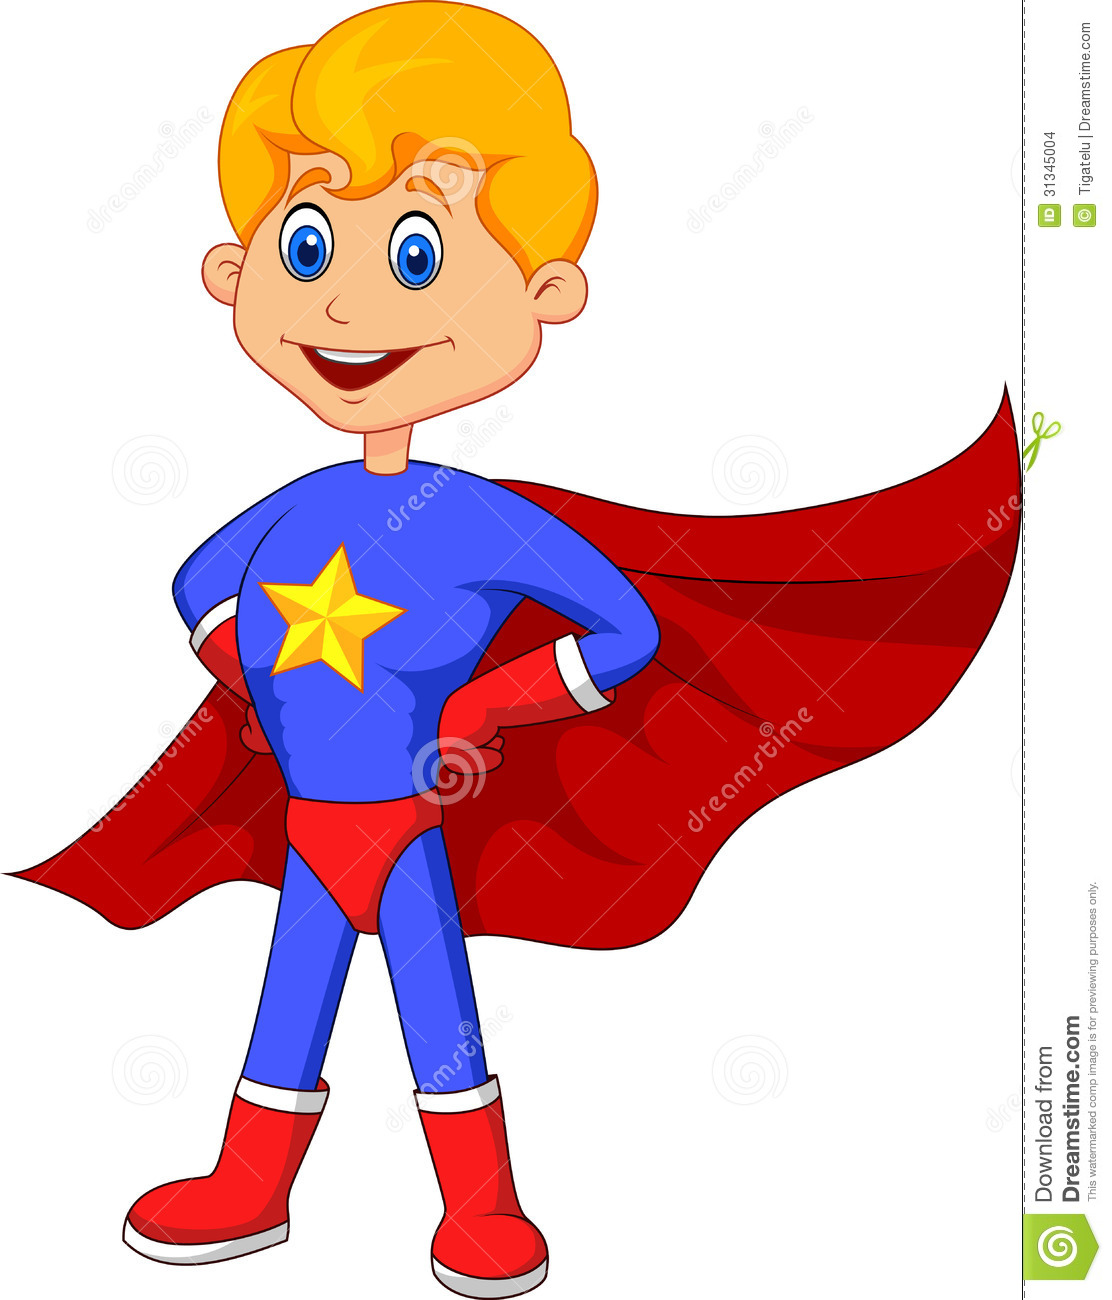 Superhero kid cartoon | Clipart Panda - Free Clipart Images